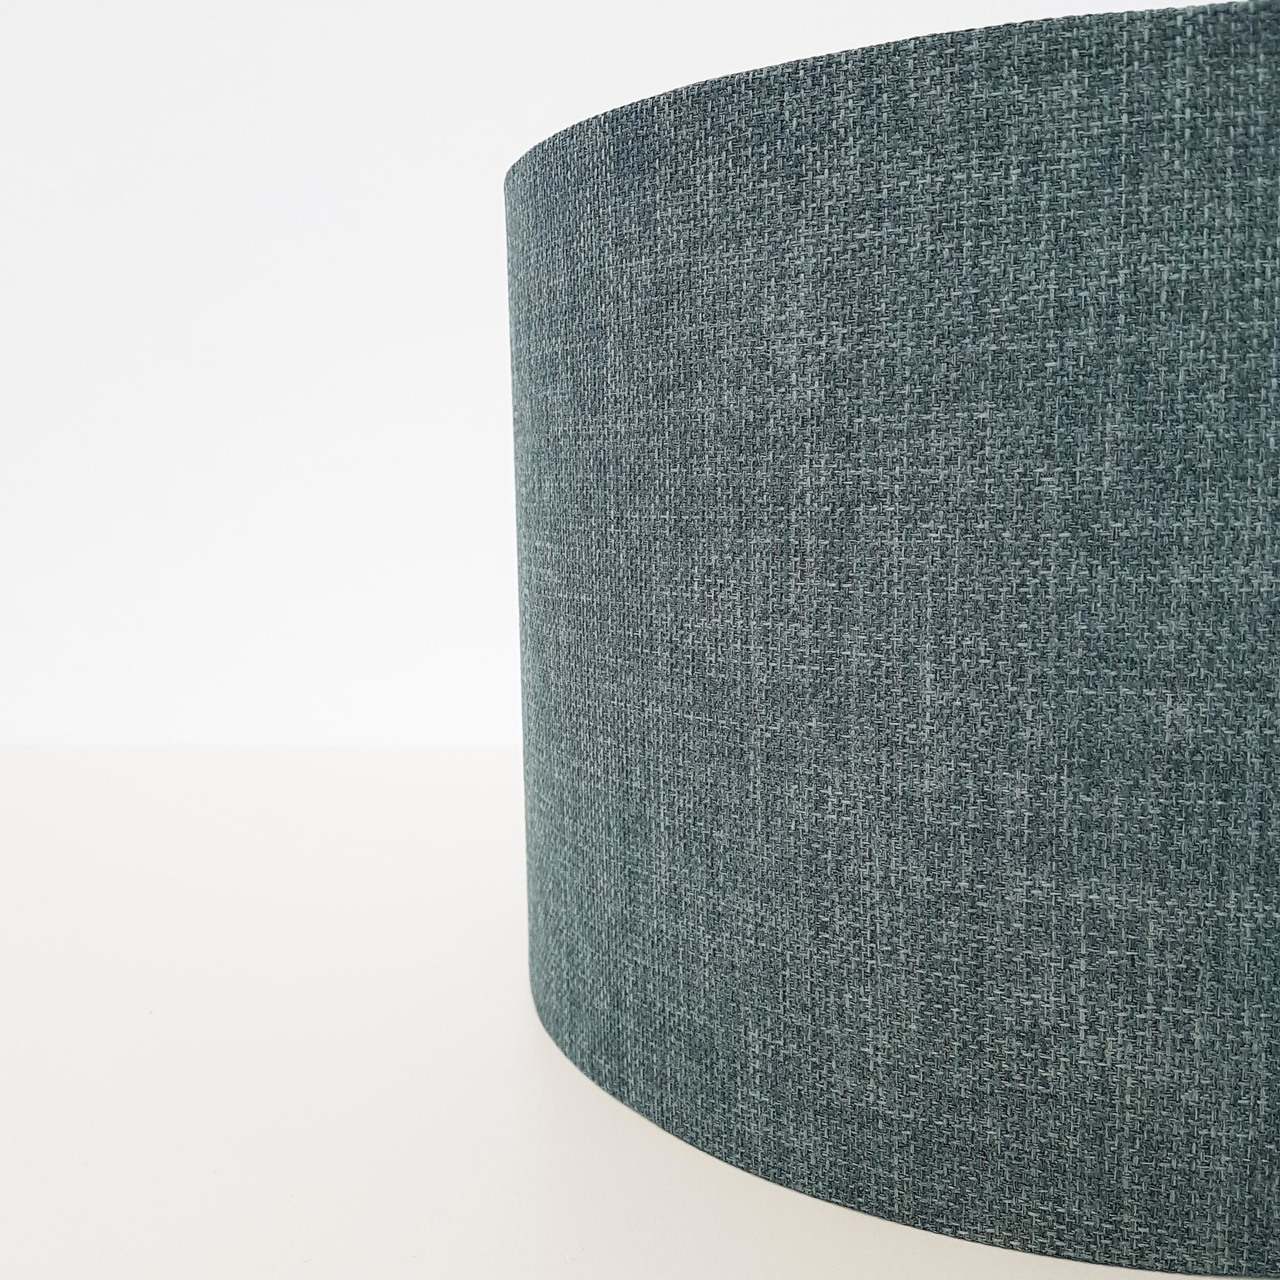 Textured Lampshade, Duck Egg Blue and Silver